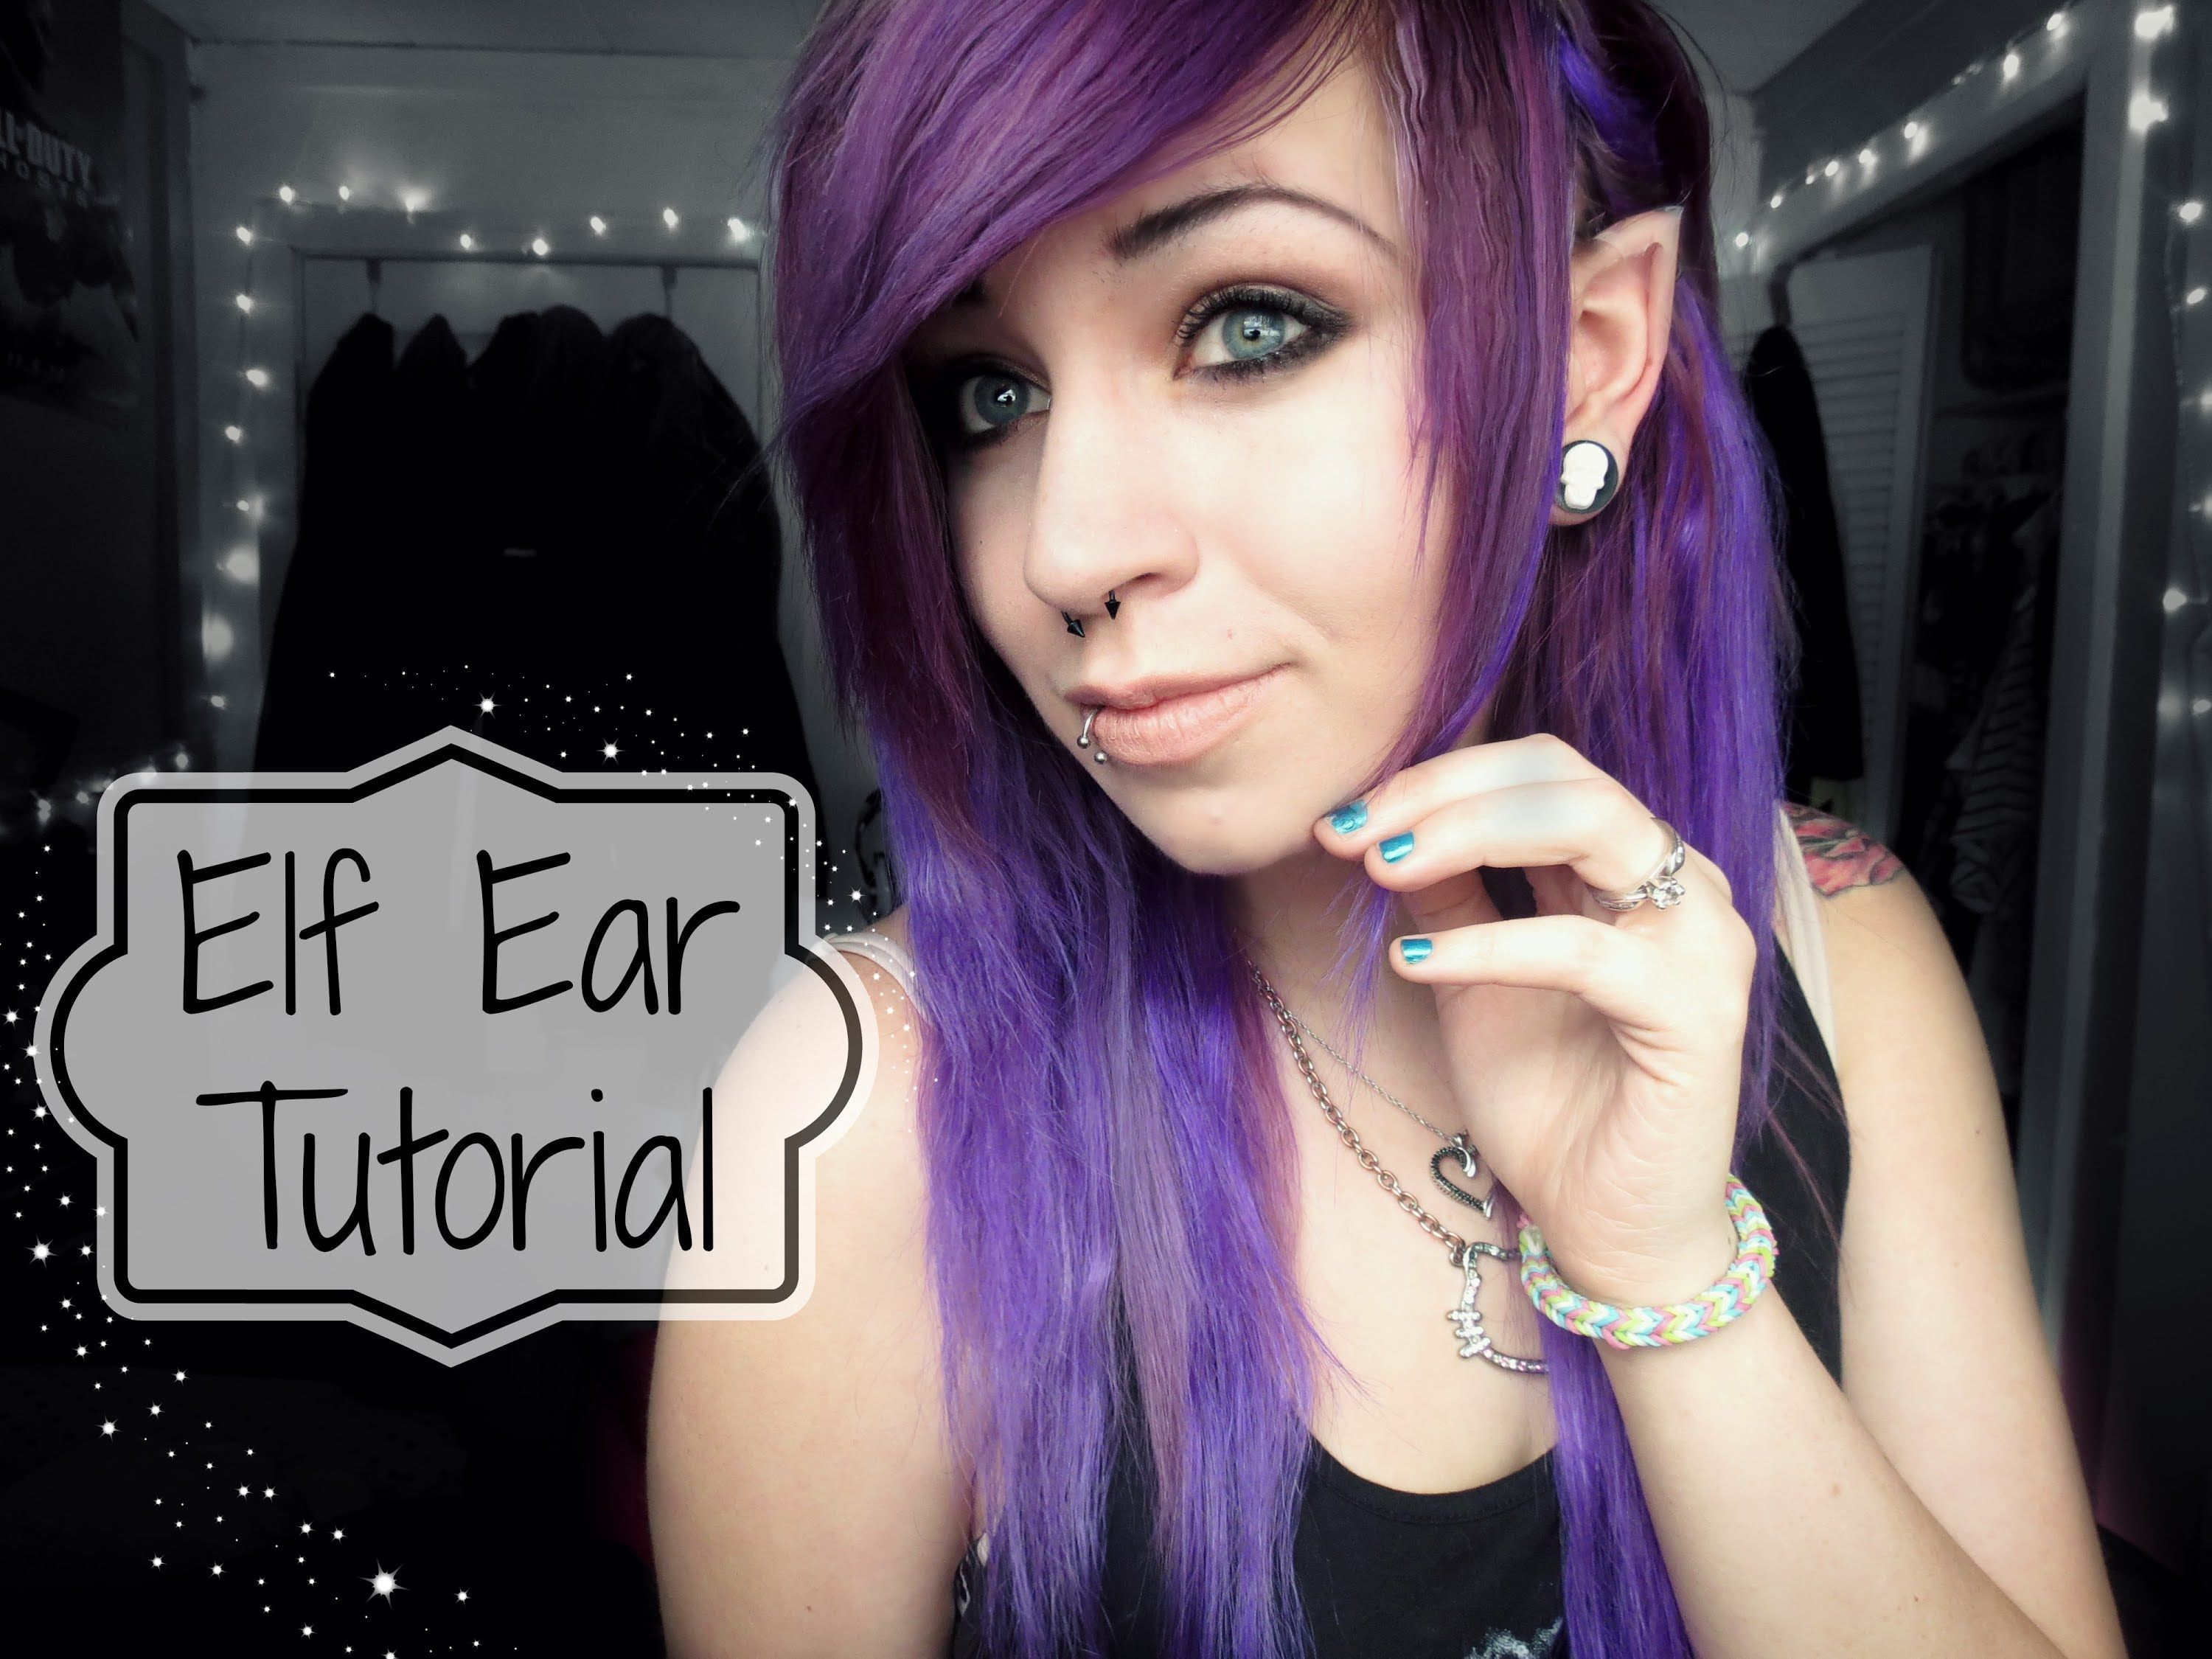 Elf Ear Tutorial Very Easy to do, just using tape and